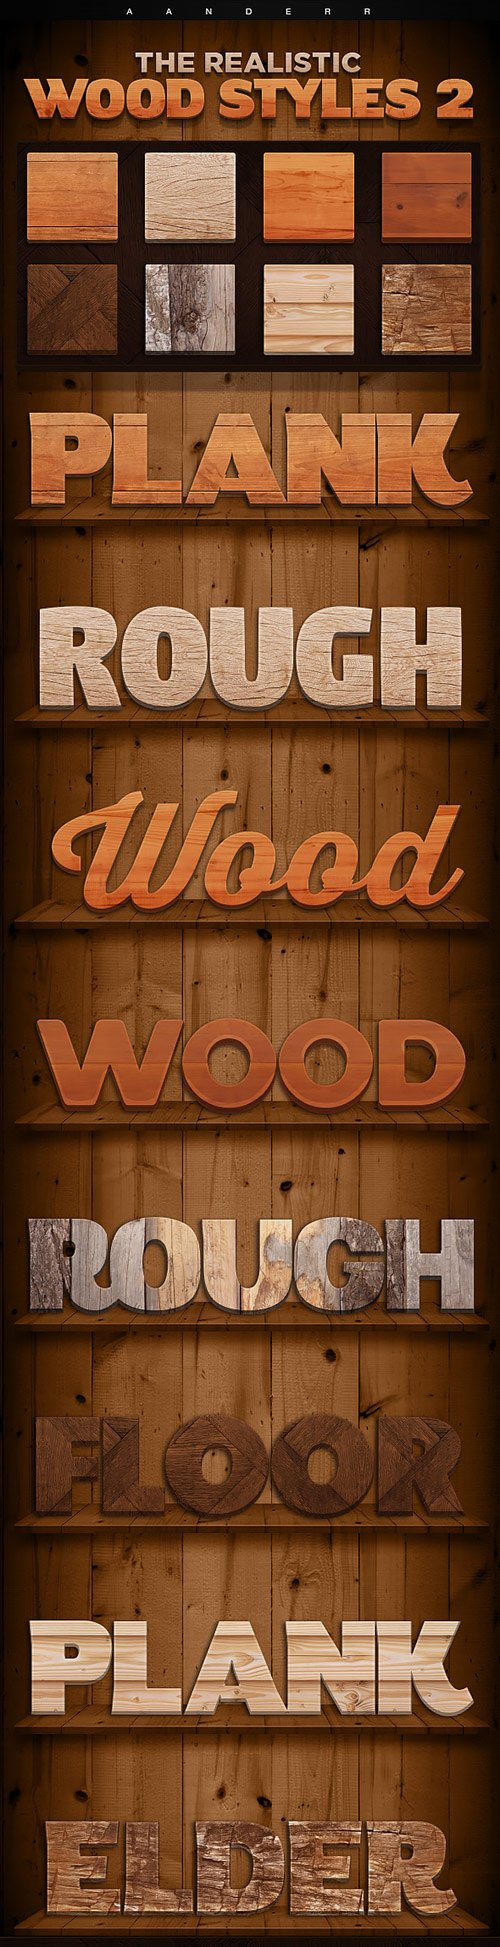 Graphicriver - The Realistic Wood Styles 2 18006000